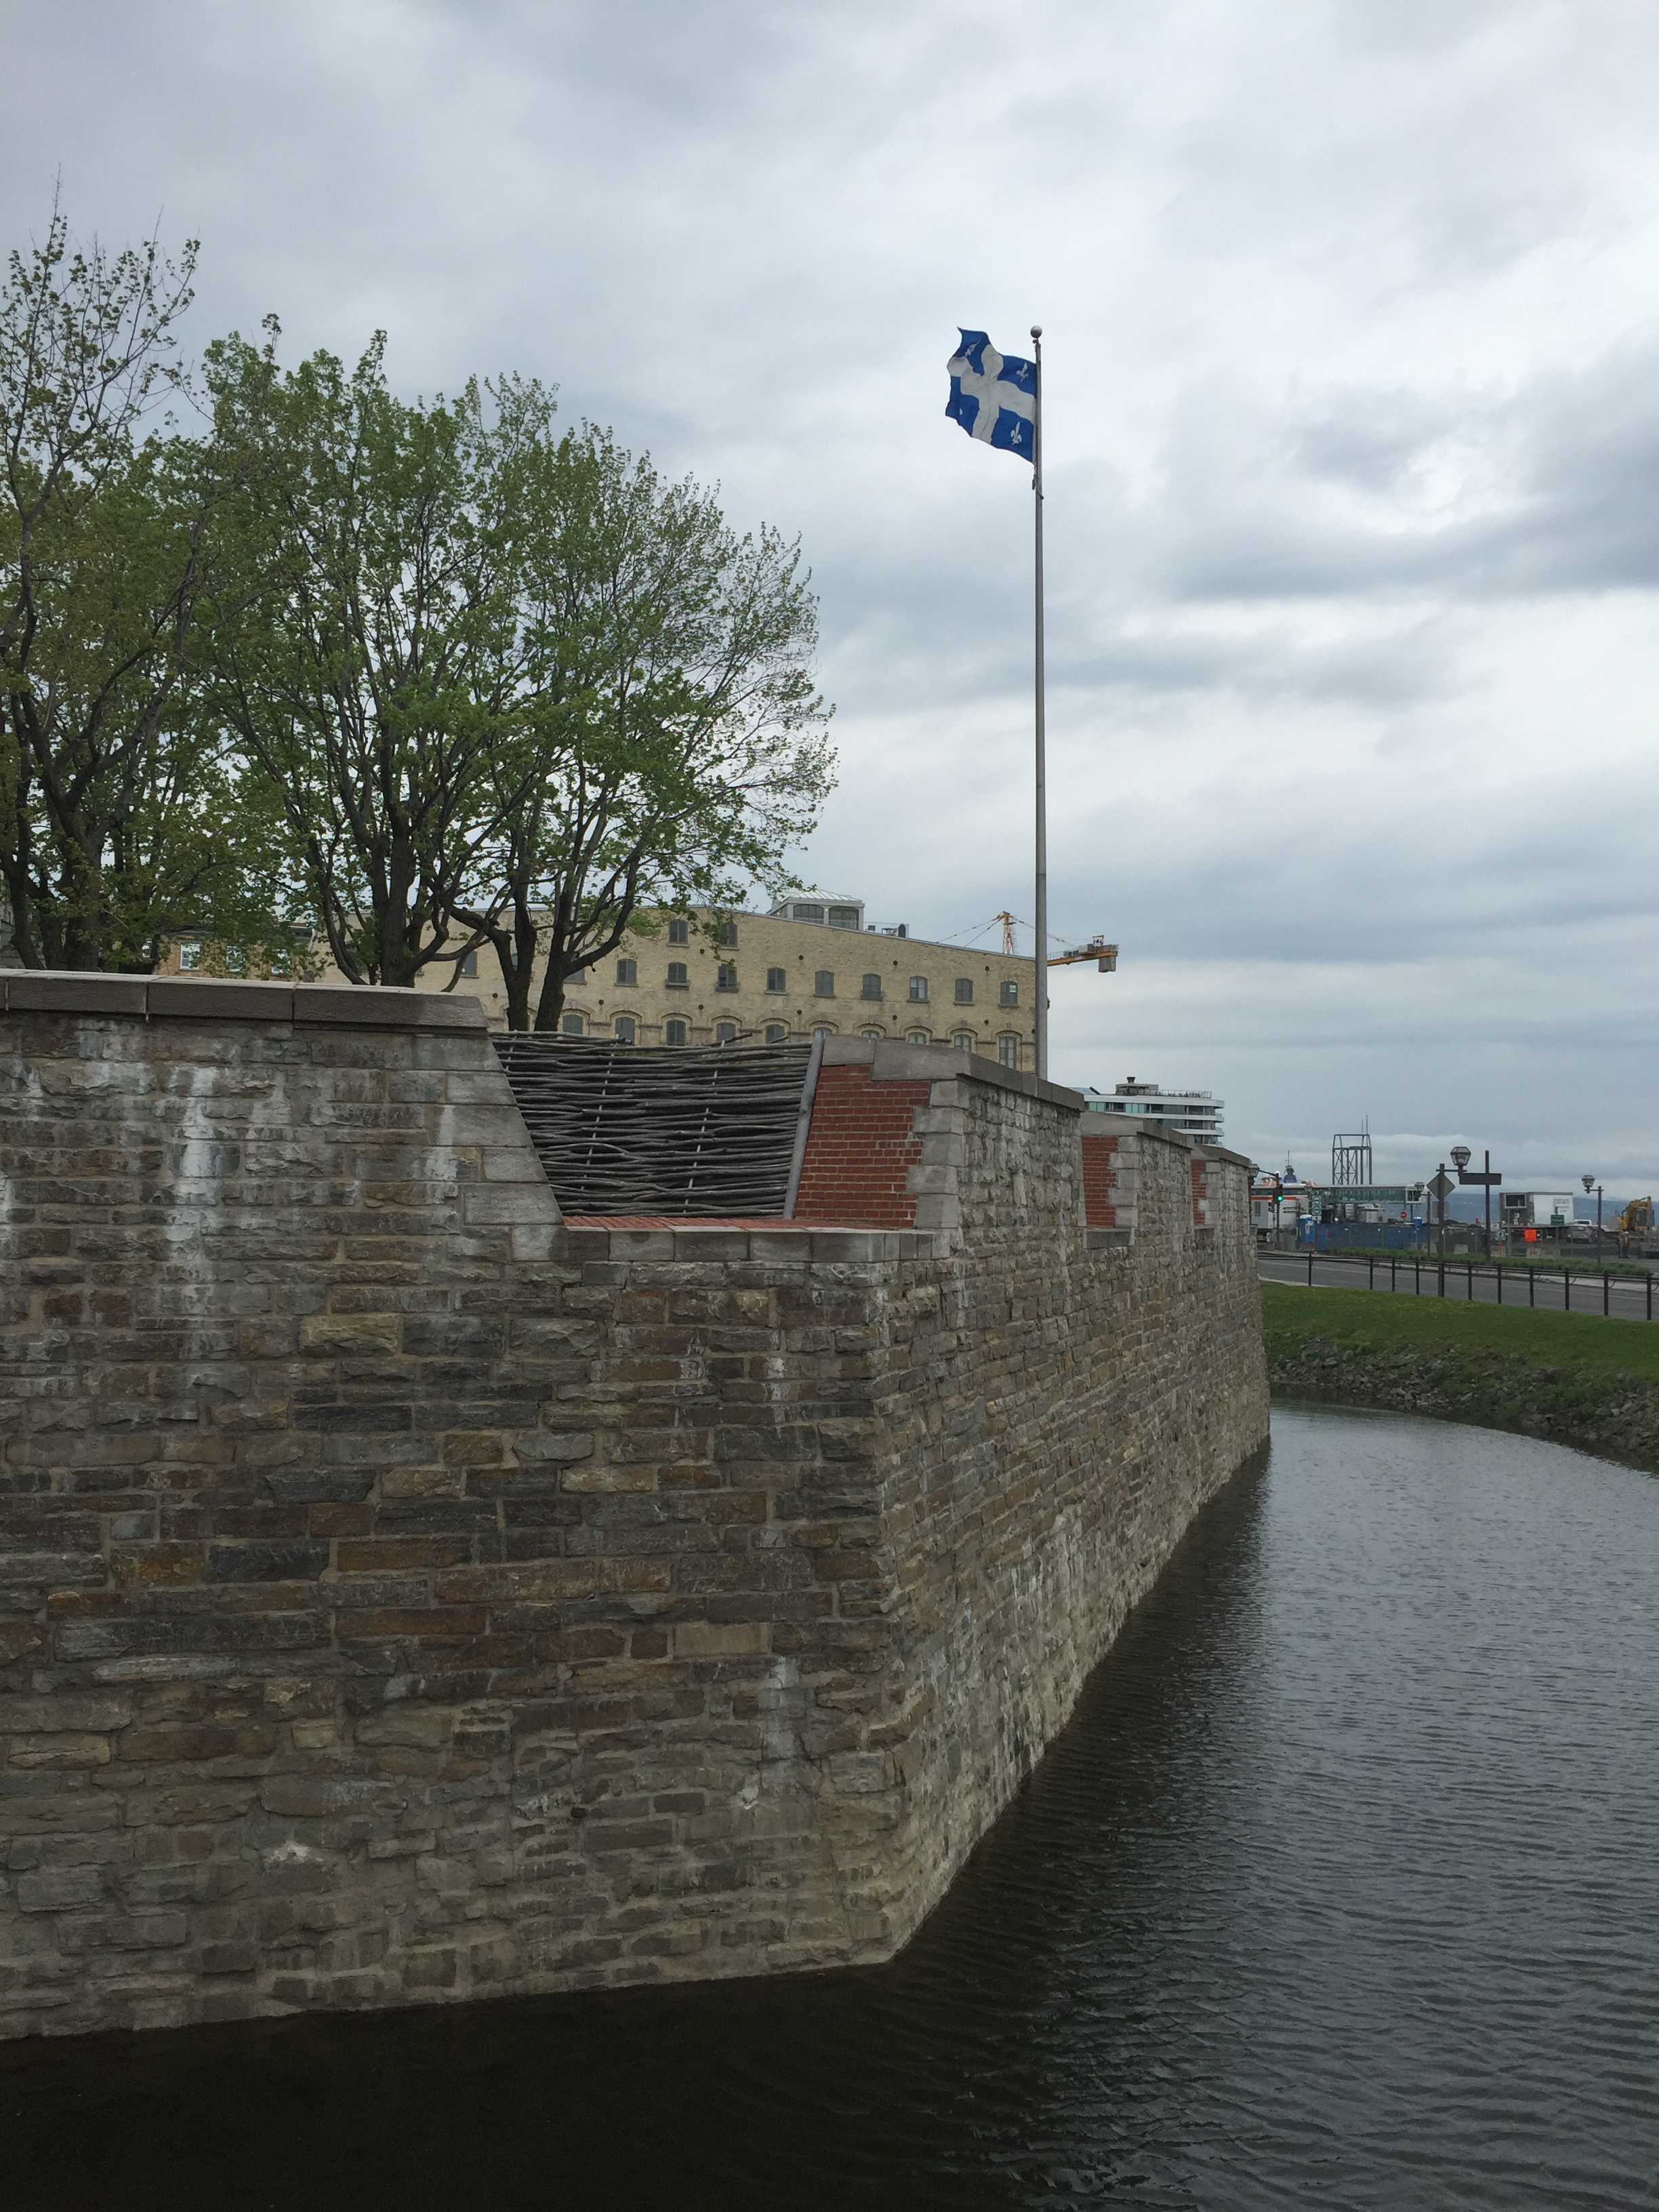 The old city walls in Quebec City, Canada